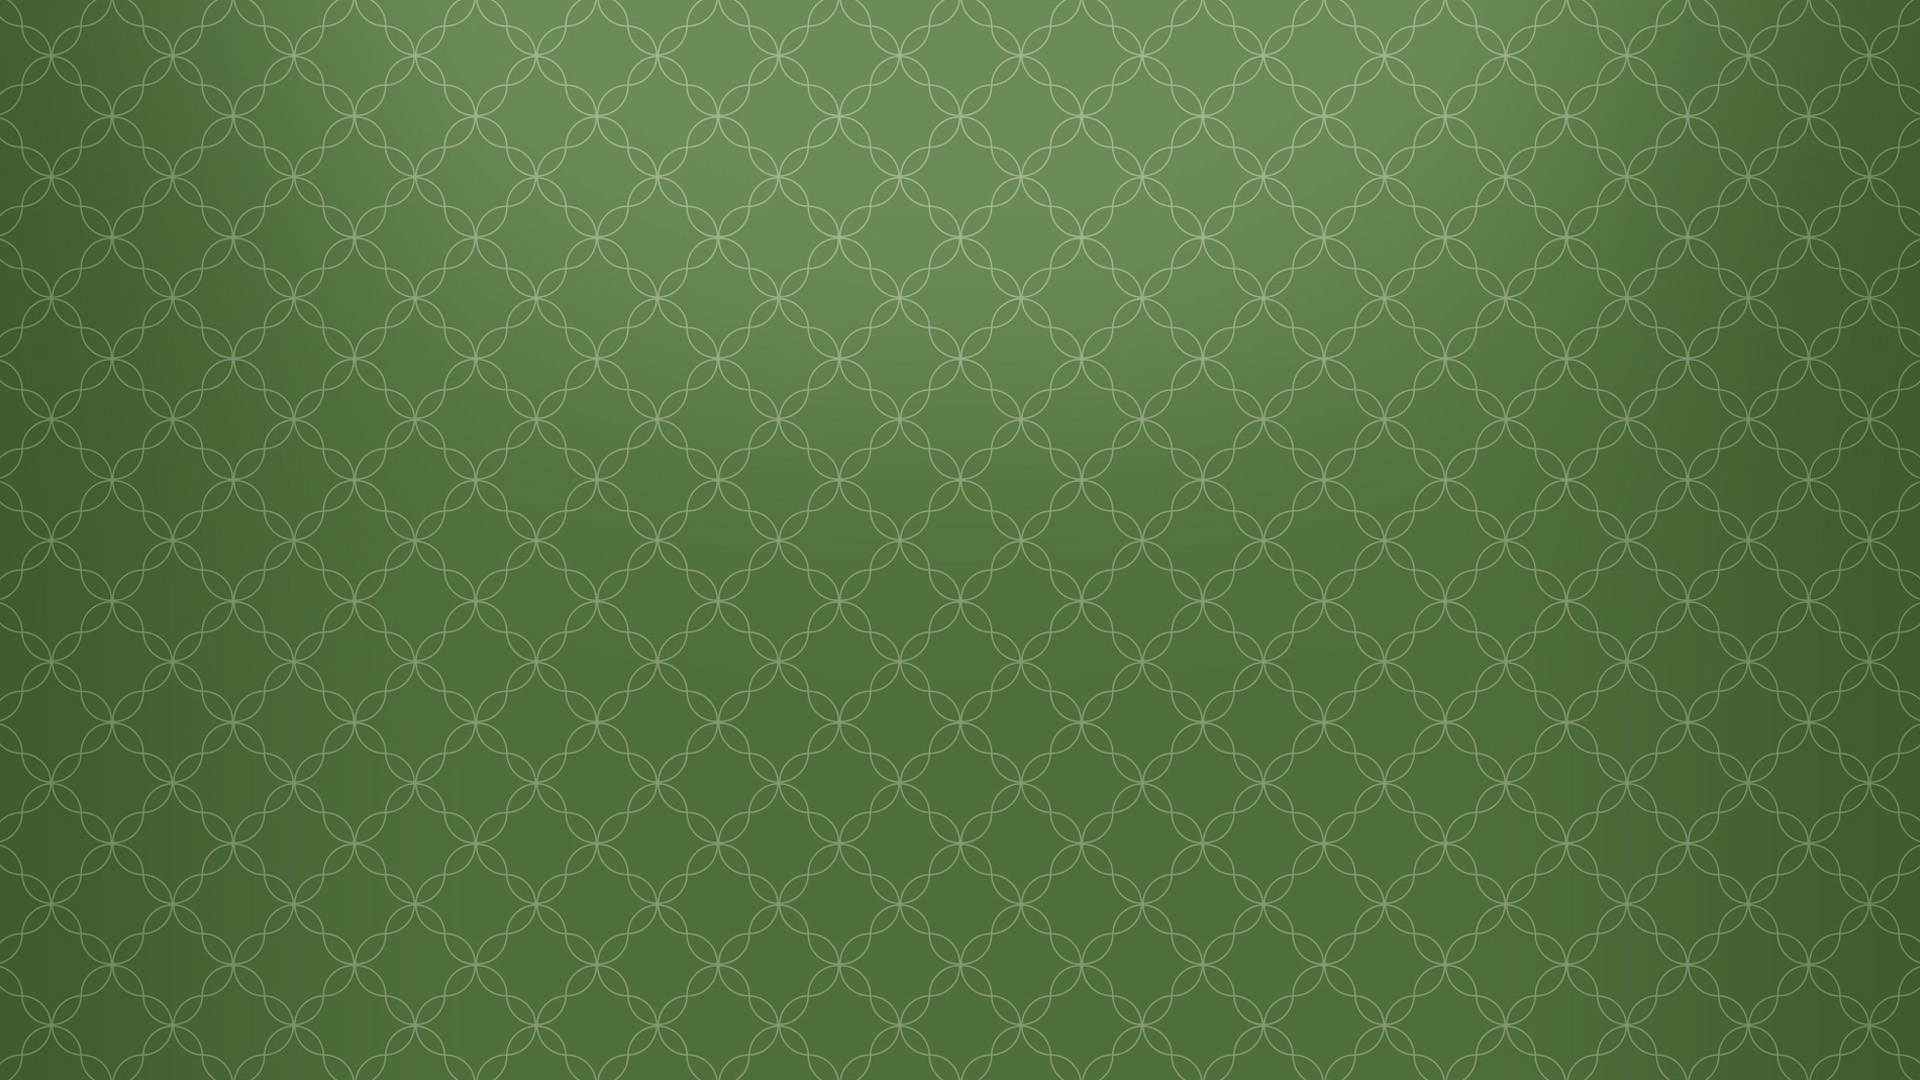 Olive Green Textured Wallpaper